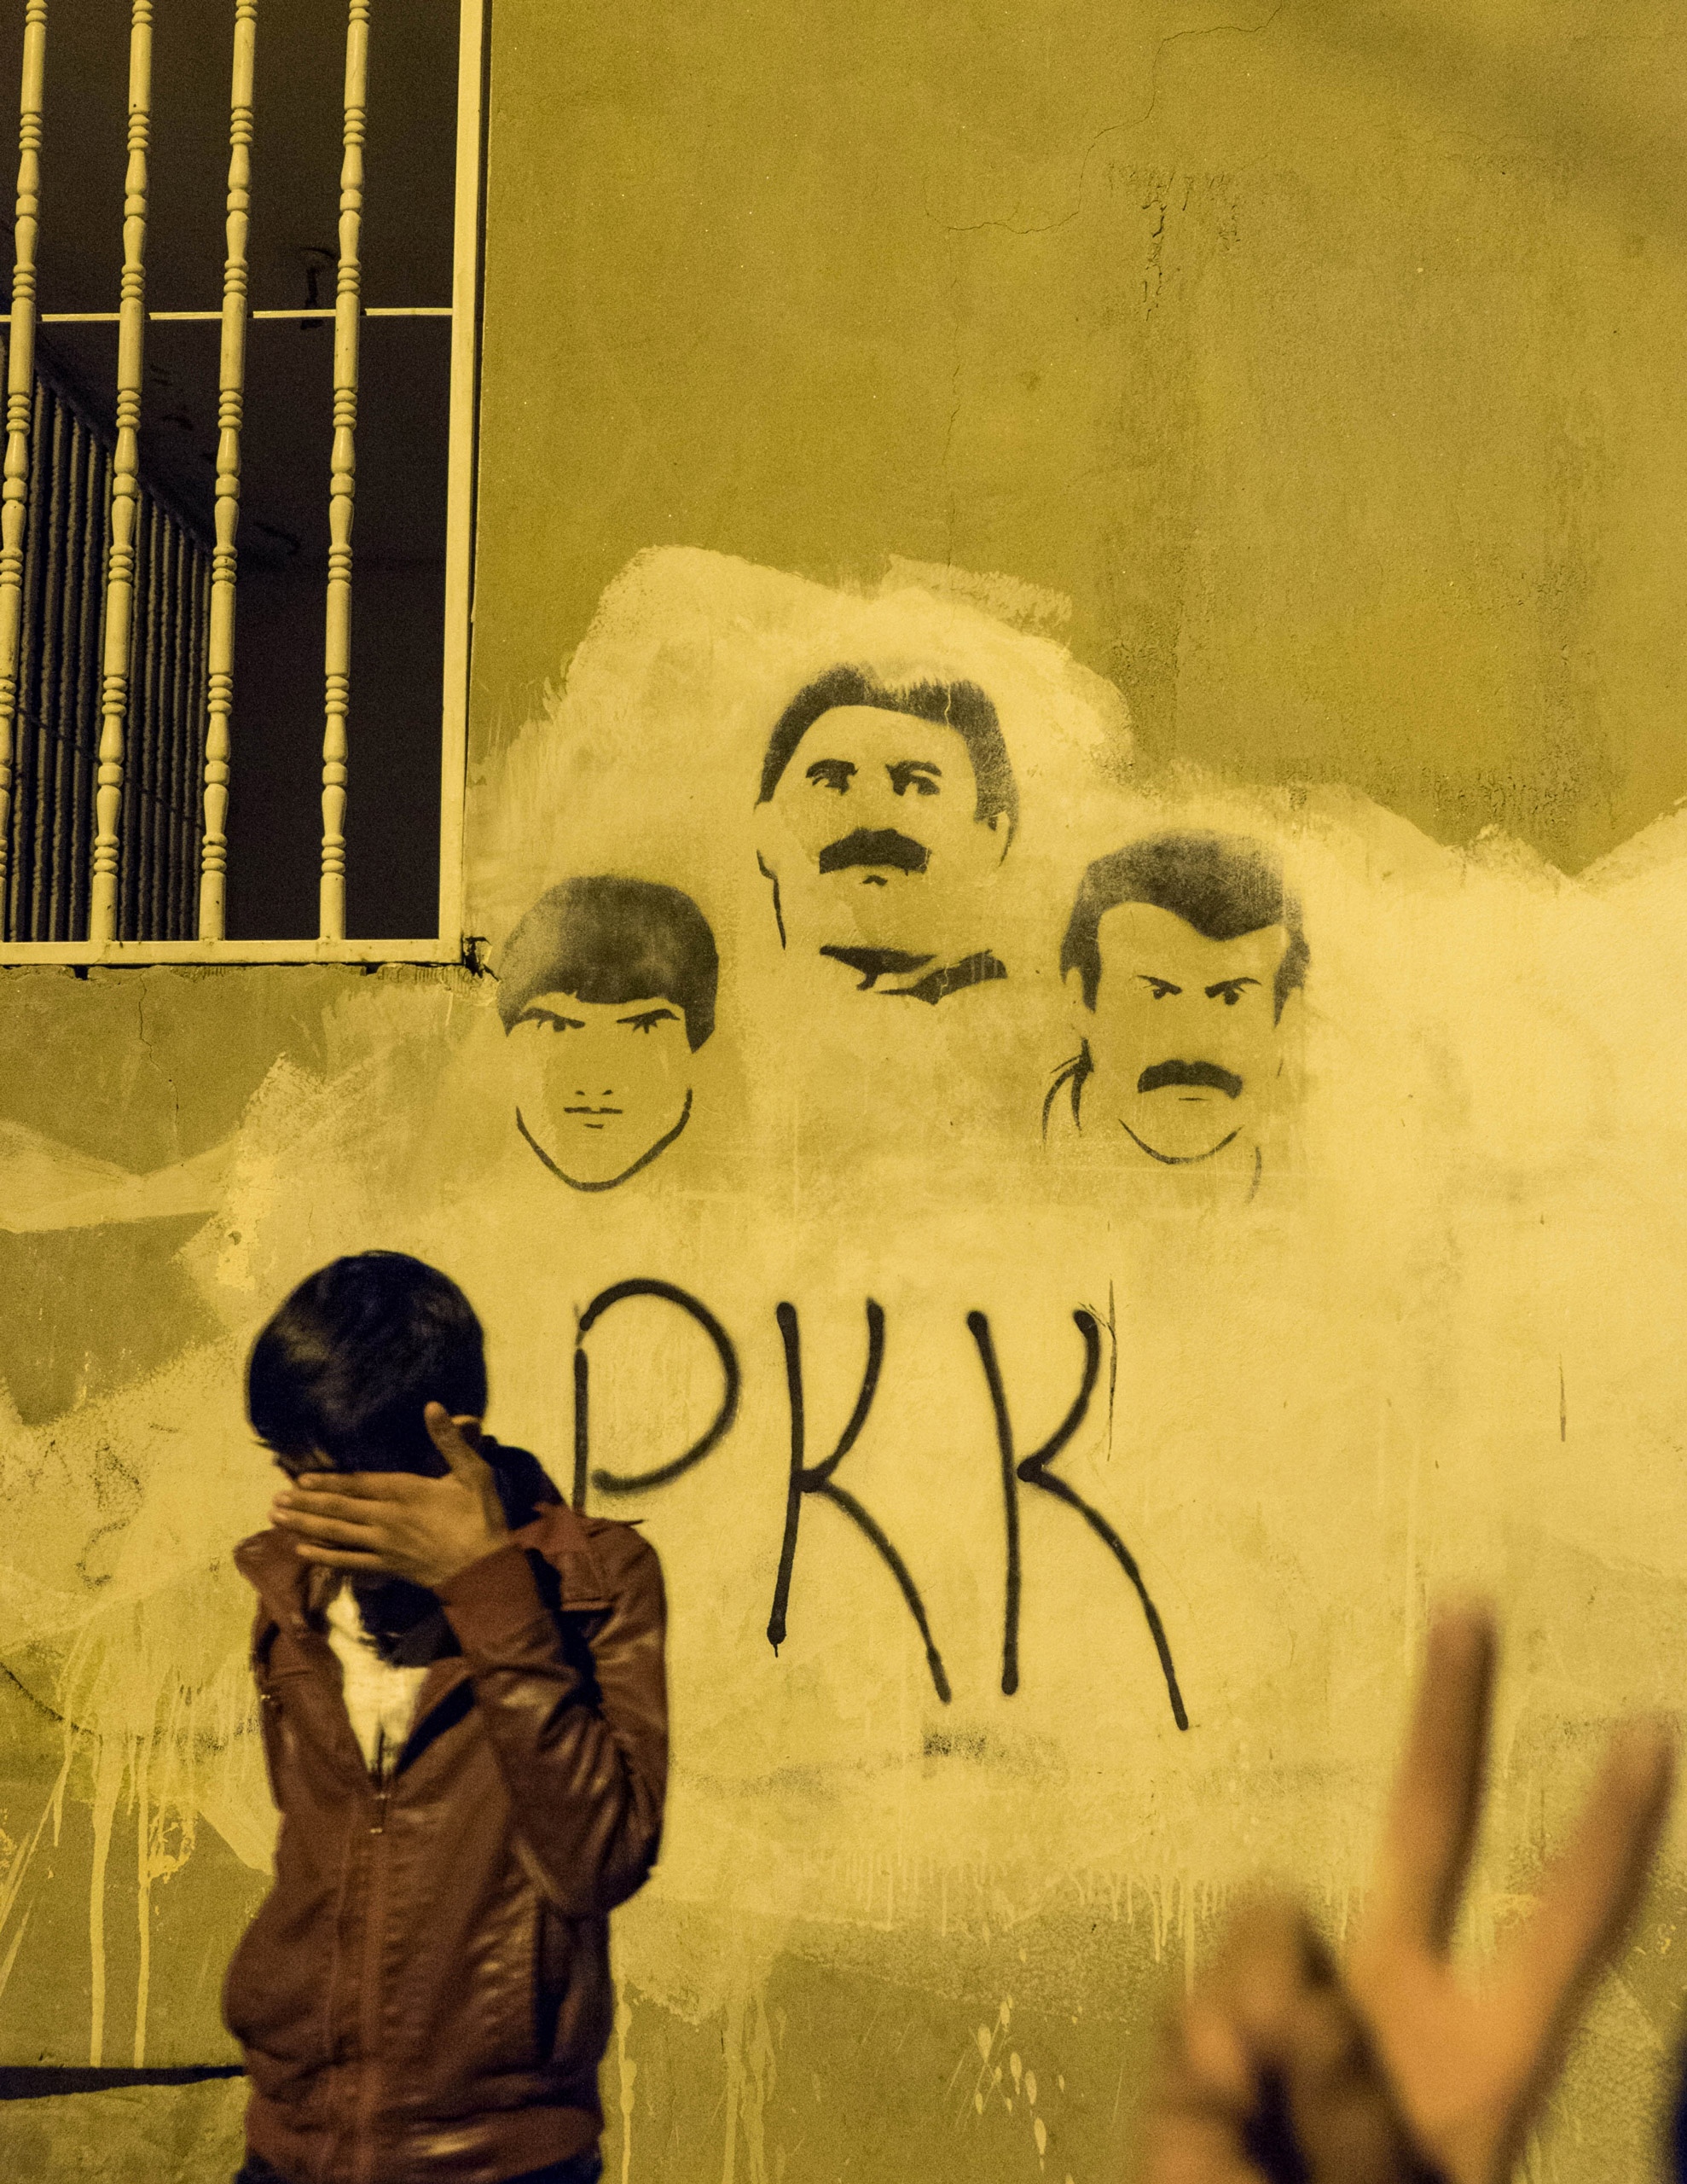 Cudi, an autonomous neighborhood in Cizre, on Nov. 6, 2015. Since July, several neighborhoods in Cizre declared autonomy and groups of young Kurds have taken up arms and raise barricades to prevent the advance of the Turkish forces.